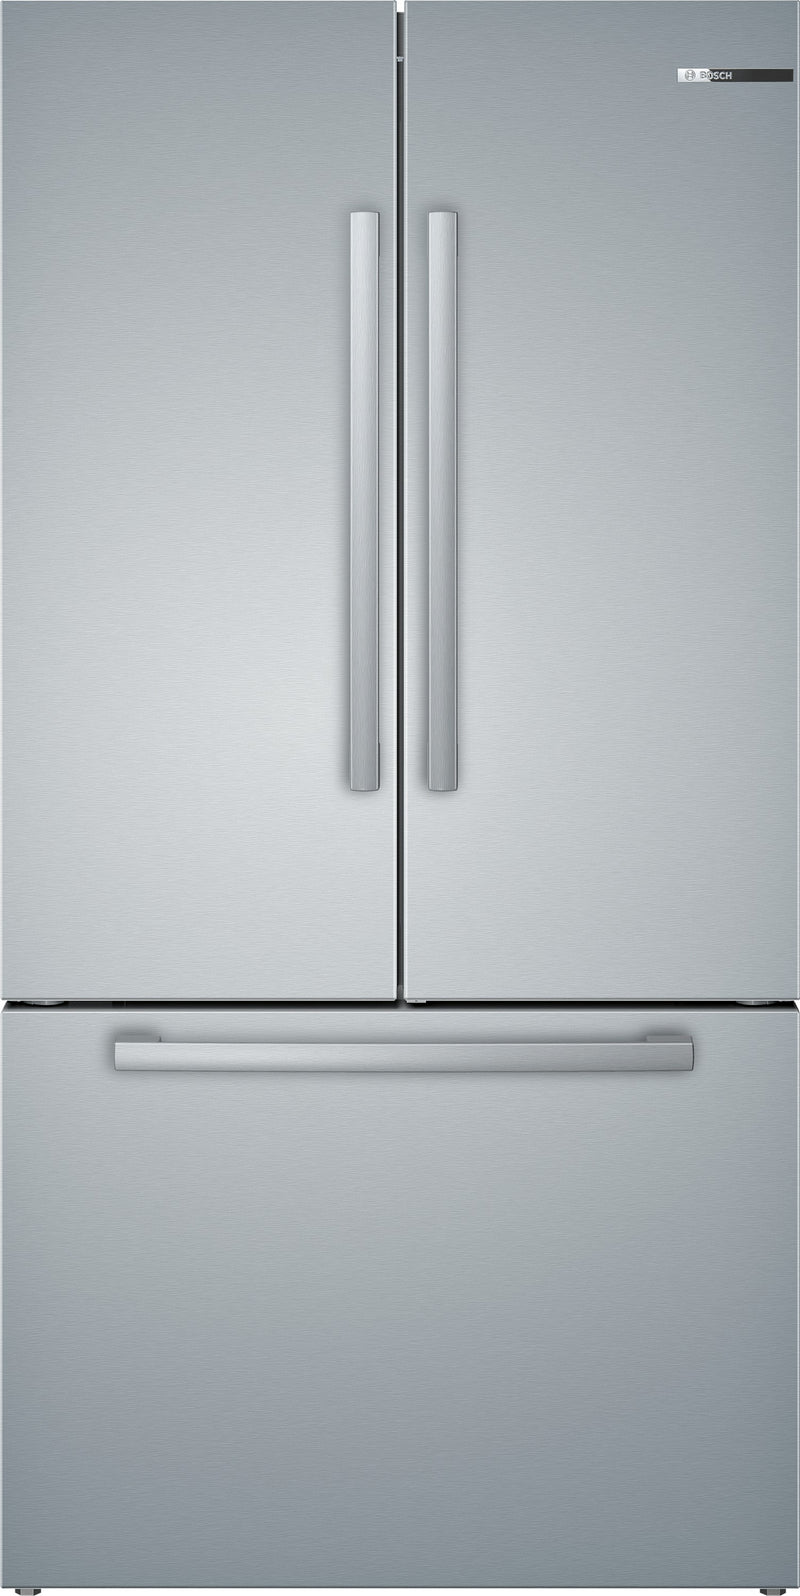 Bosch 800 Series Stainless Steel Counter-Depth French Door Refrigerator - B36CT80SNS